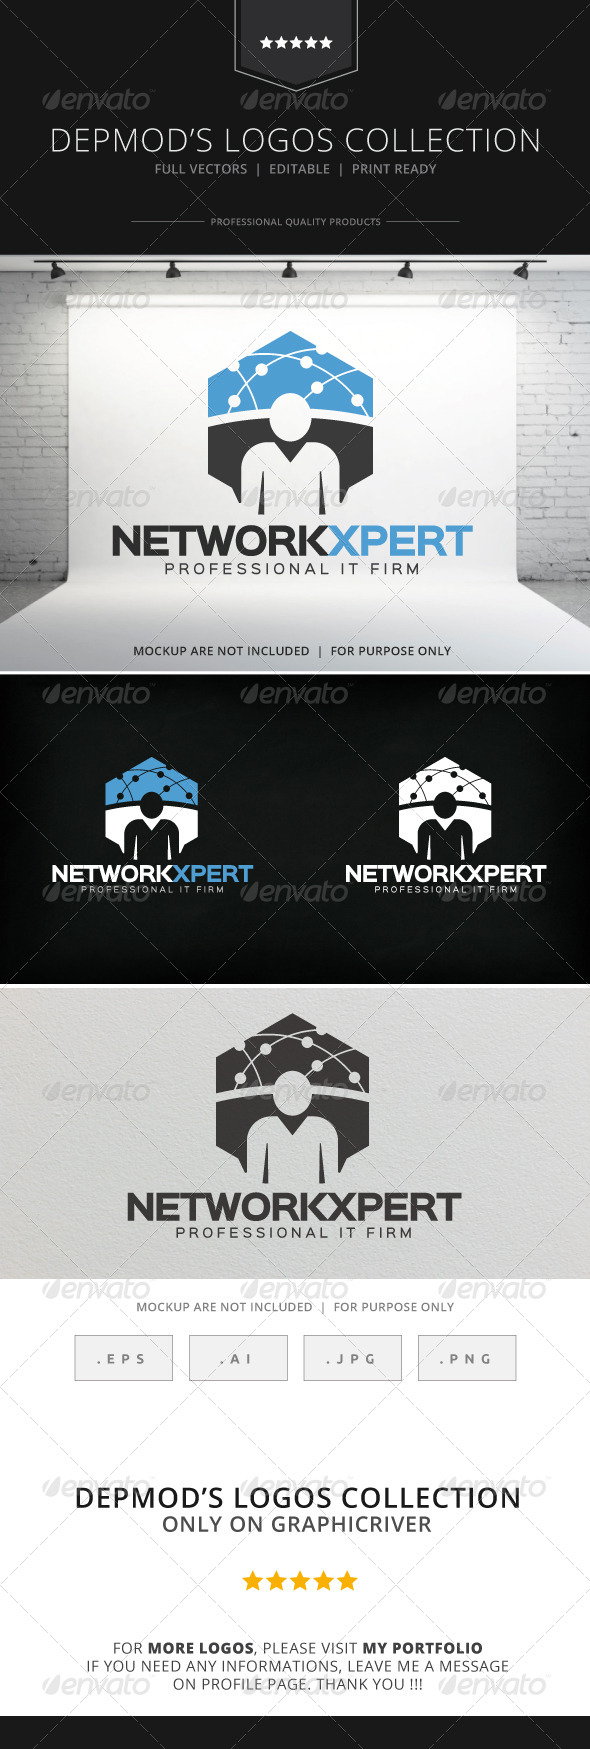 GraphicRiver Network Xpert Logo 8318441